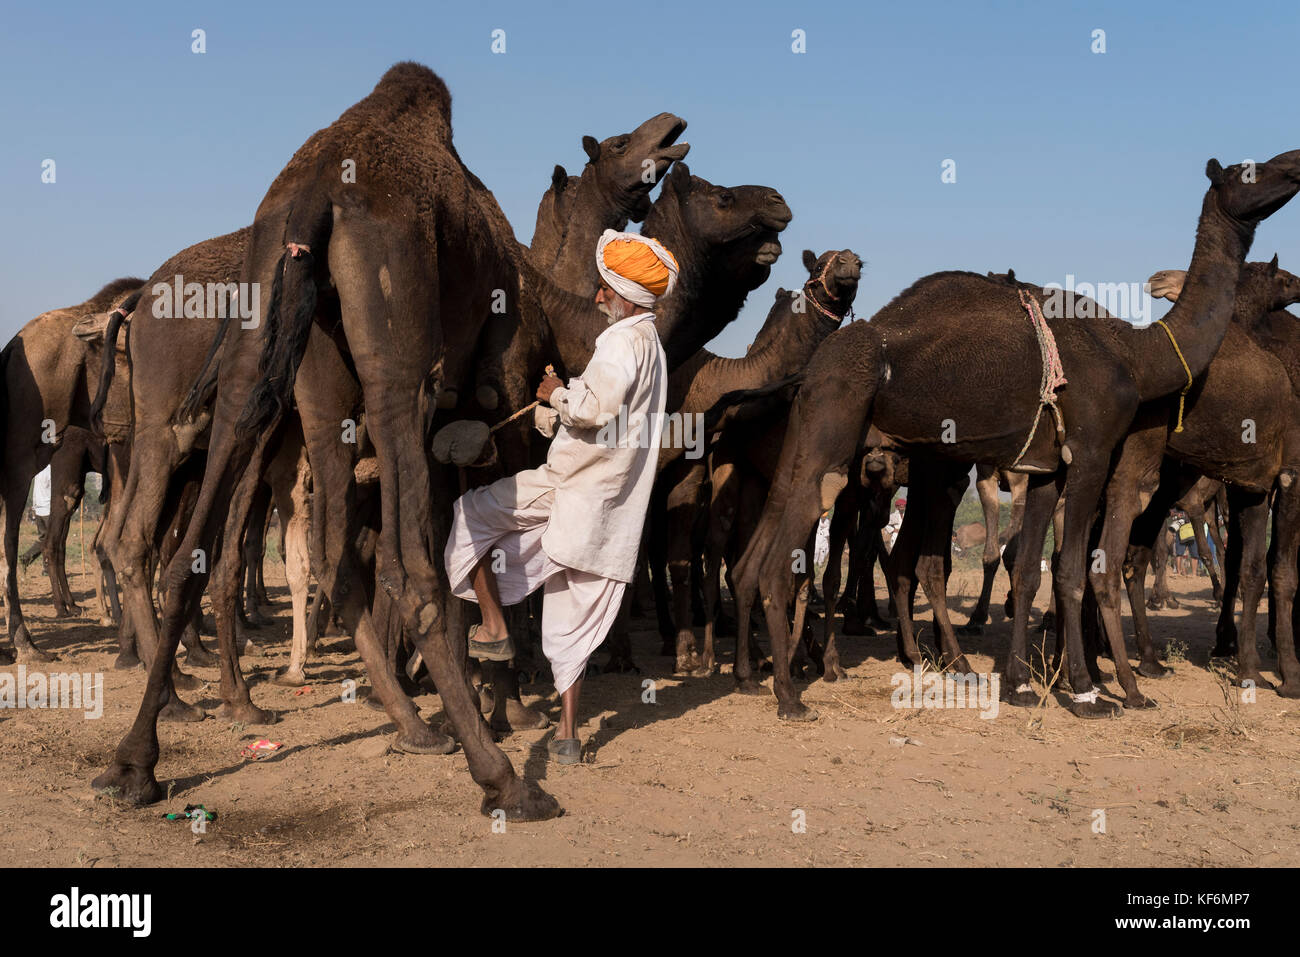 Pushkar, India. 25th Oct, 2017. One the camel leg is being tied to keep them in one place. Credit: Ravikanth Kurma/Alamy - Stock Image